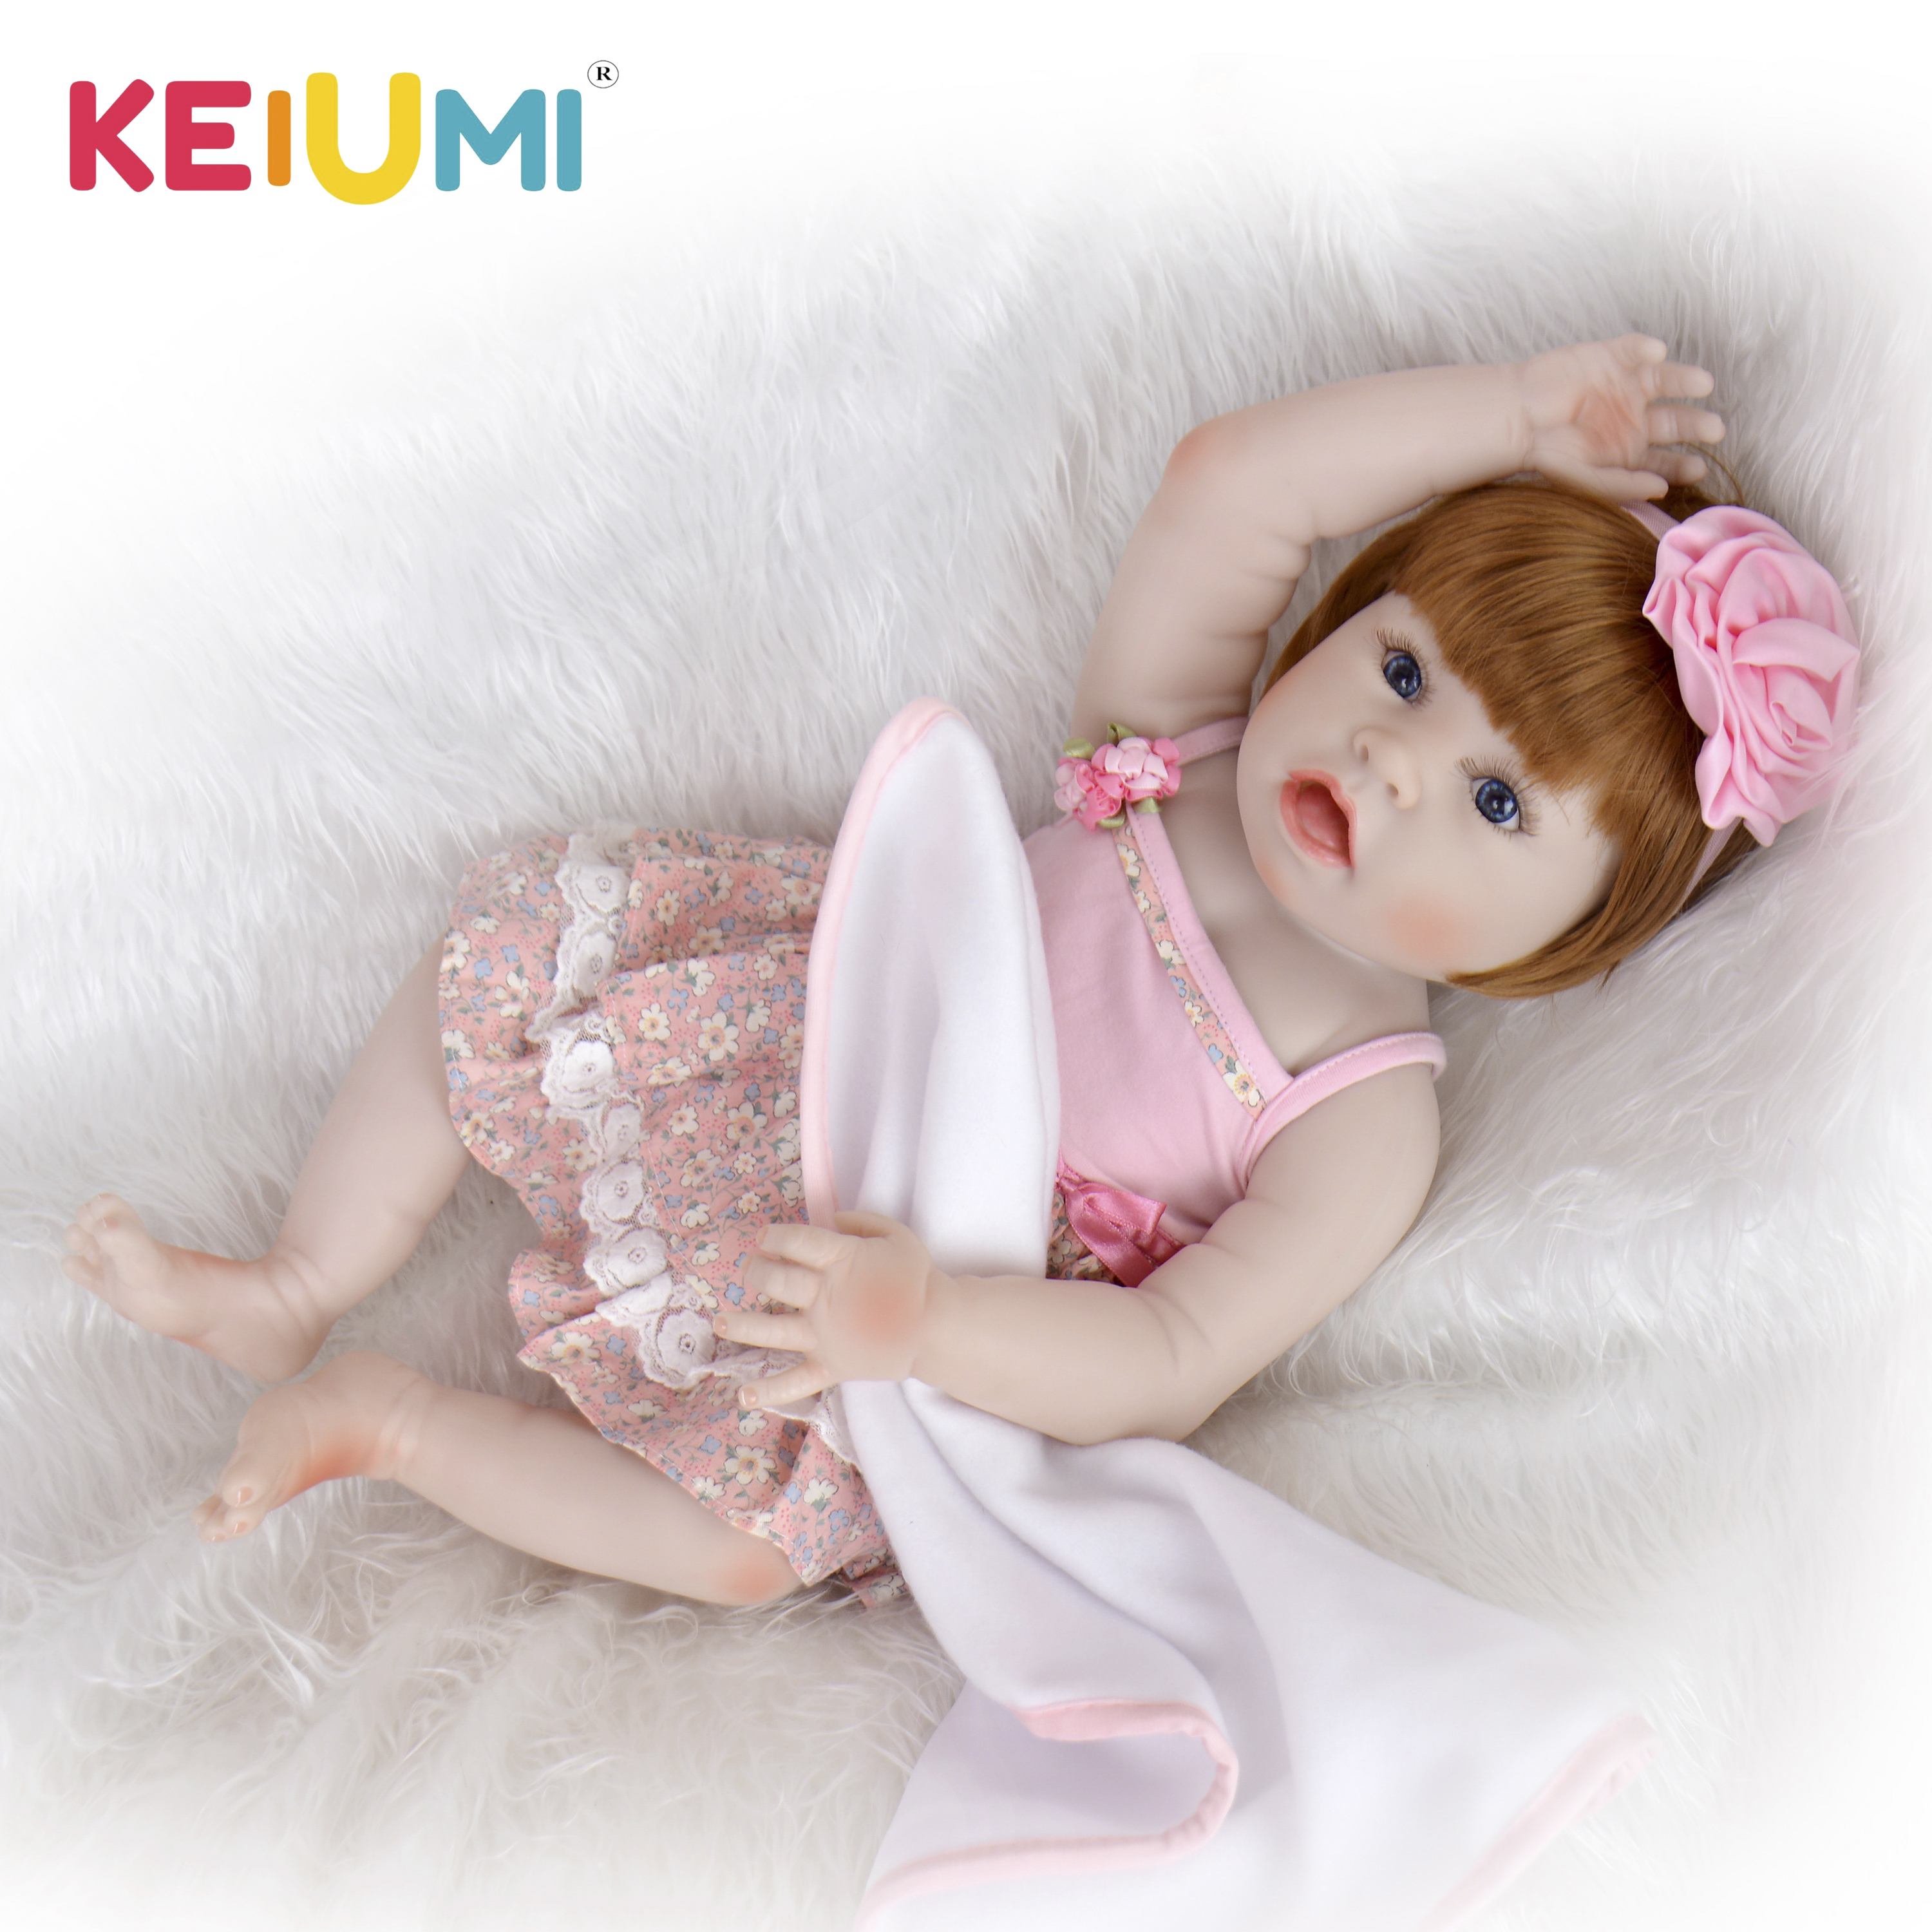 23 Inch Lifelike Reborn Doll Baby Toy Full Silicone Body Vinyl Open Mouth Realistic Baby Doll